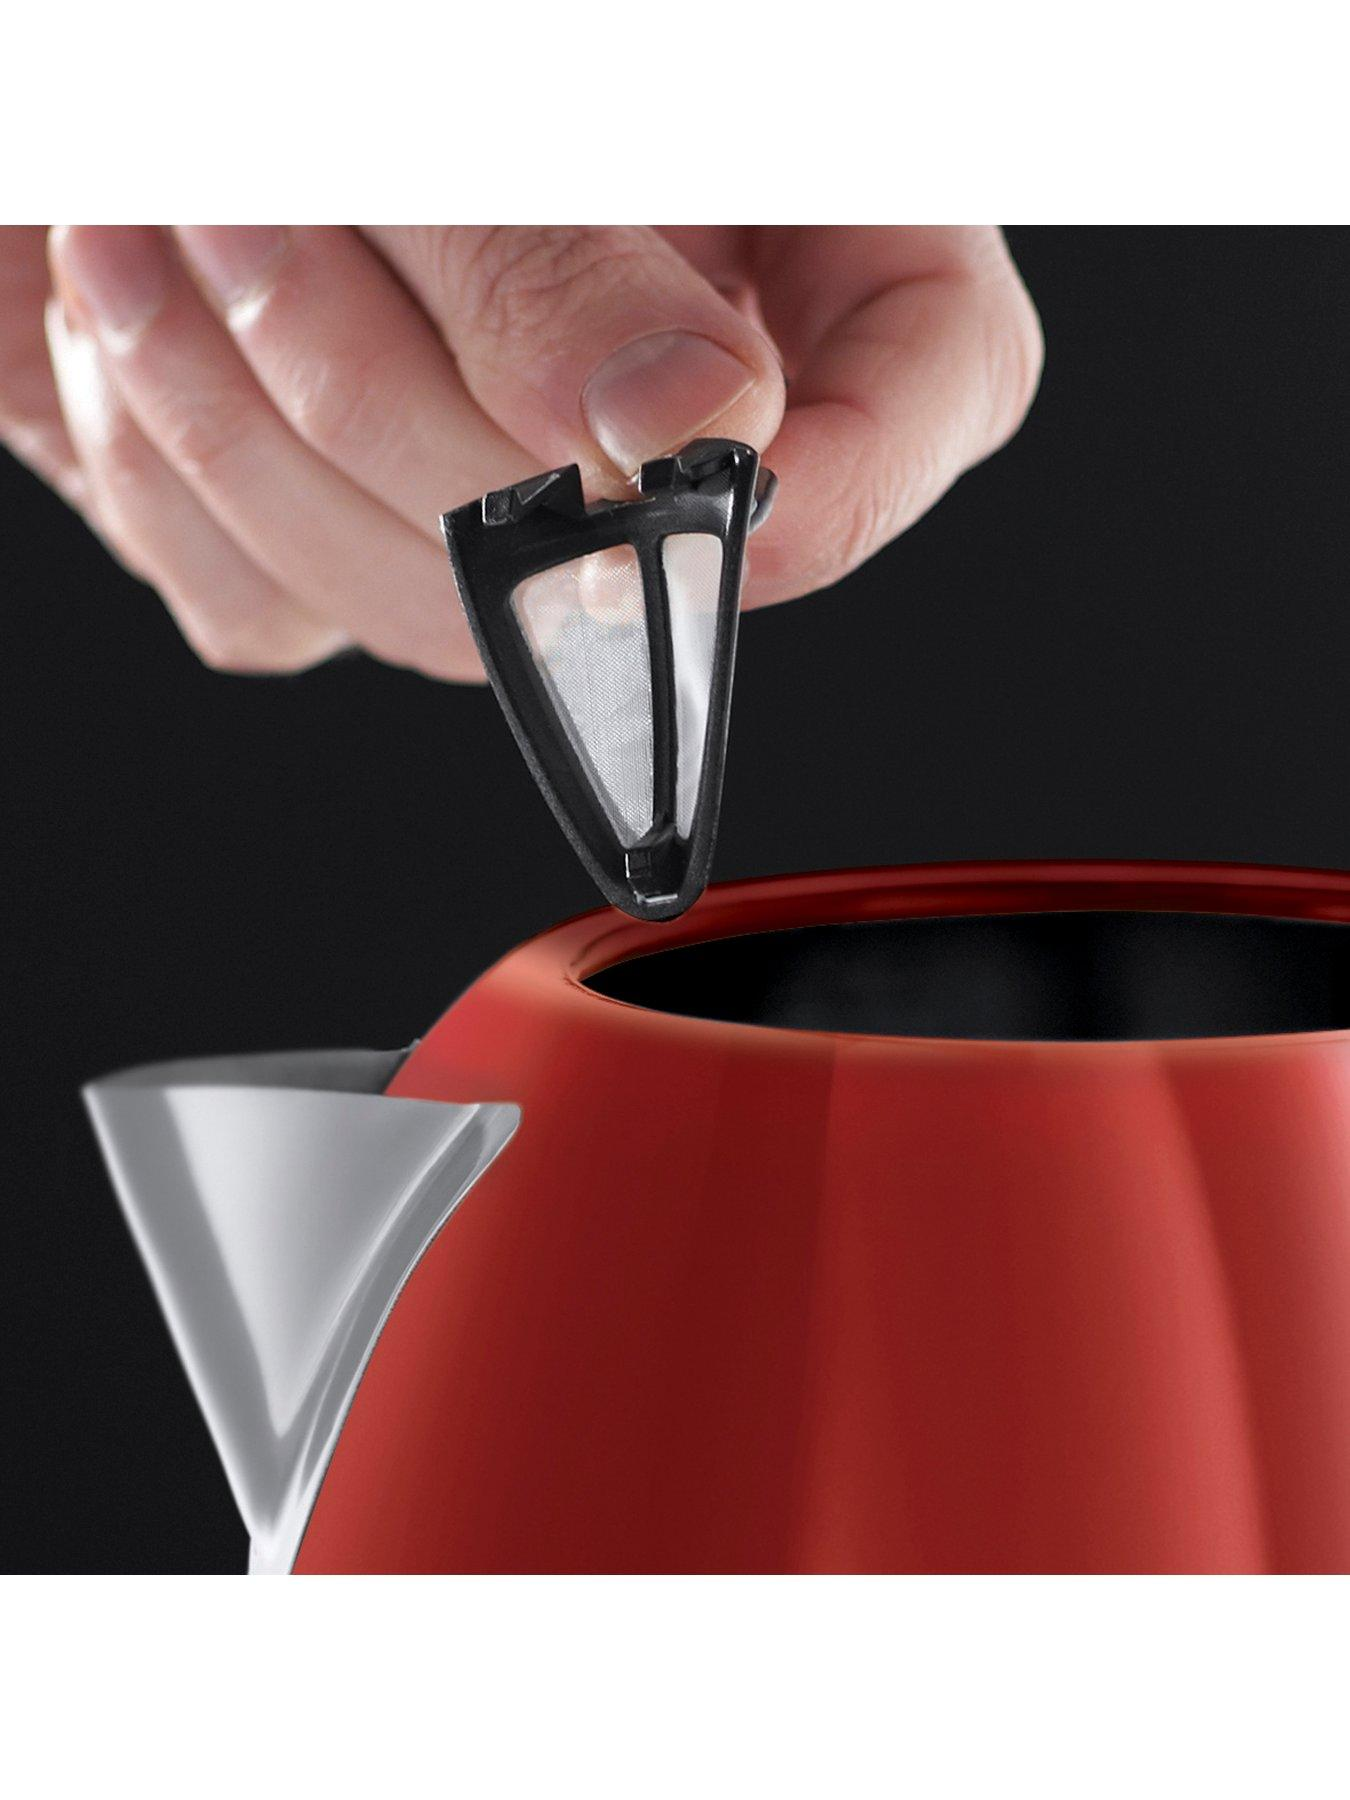 Lot 50758 - V Brand New Russel Hobbs Red Dorchester Kettle - Perfect Pour - Saves Up To 70% Energy - Littlewoods